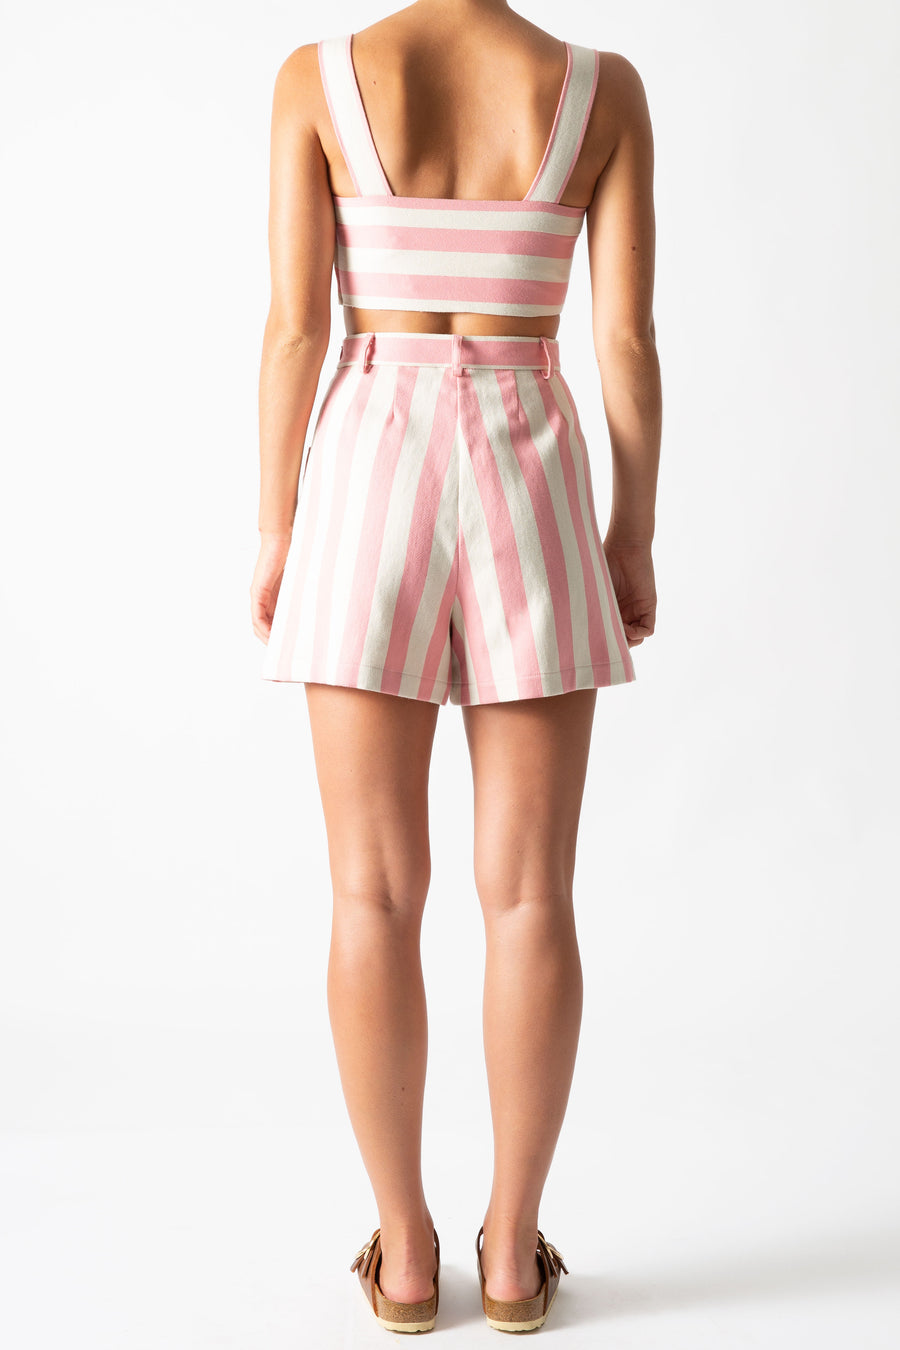 This is a back view photo of a woman wearing a matching two-piece suit with shorts and a cropped top,. The outfit is pink and neutral thick stripes with gold buttons.